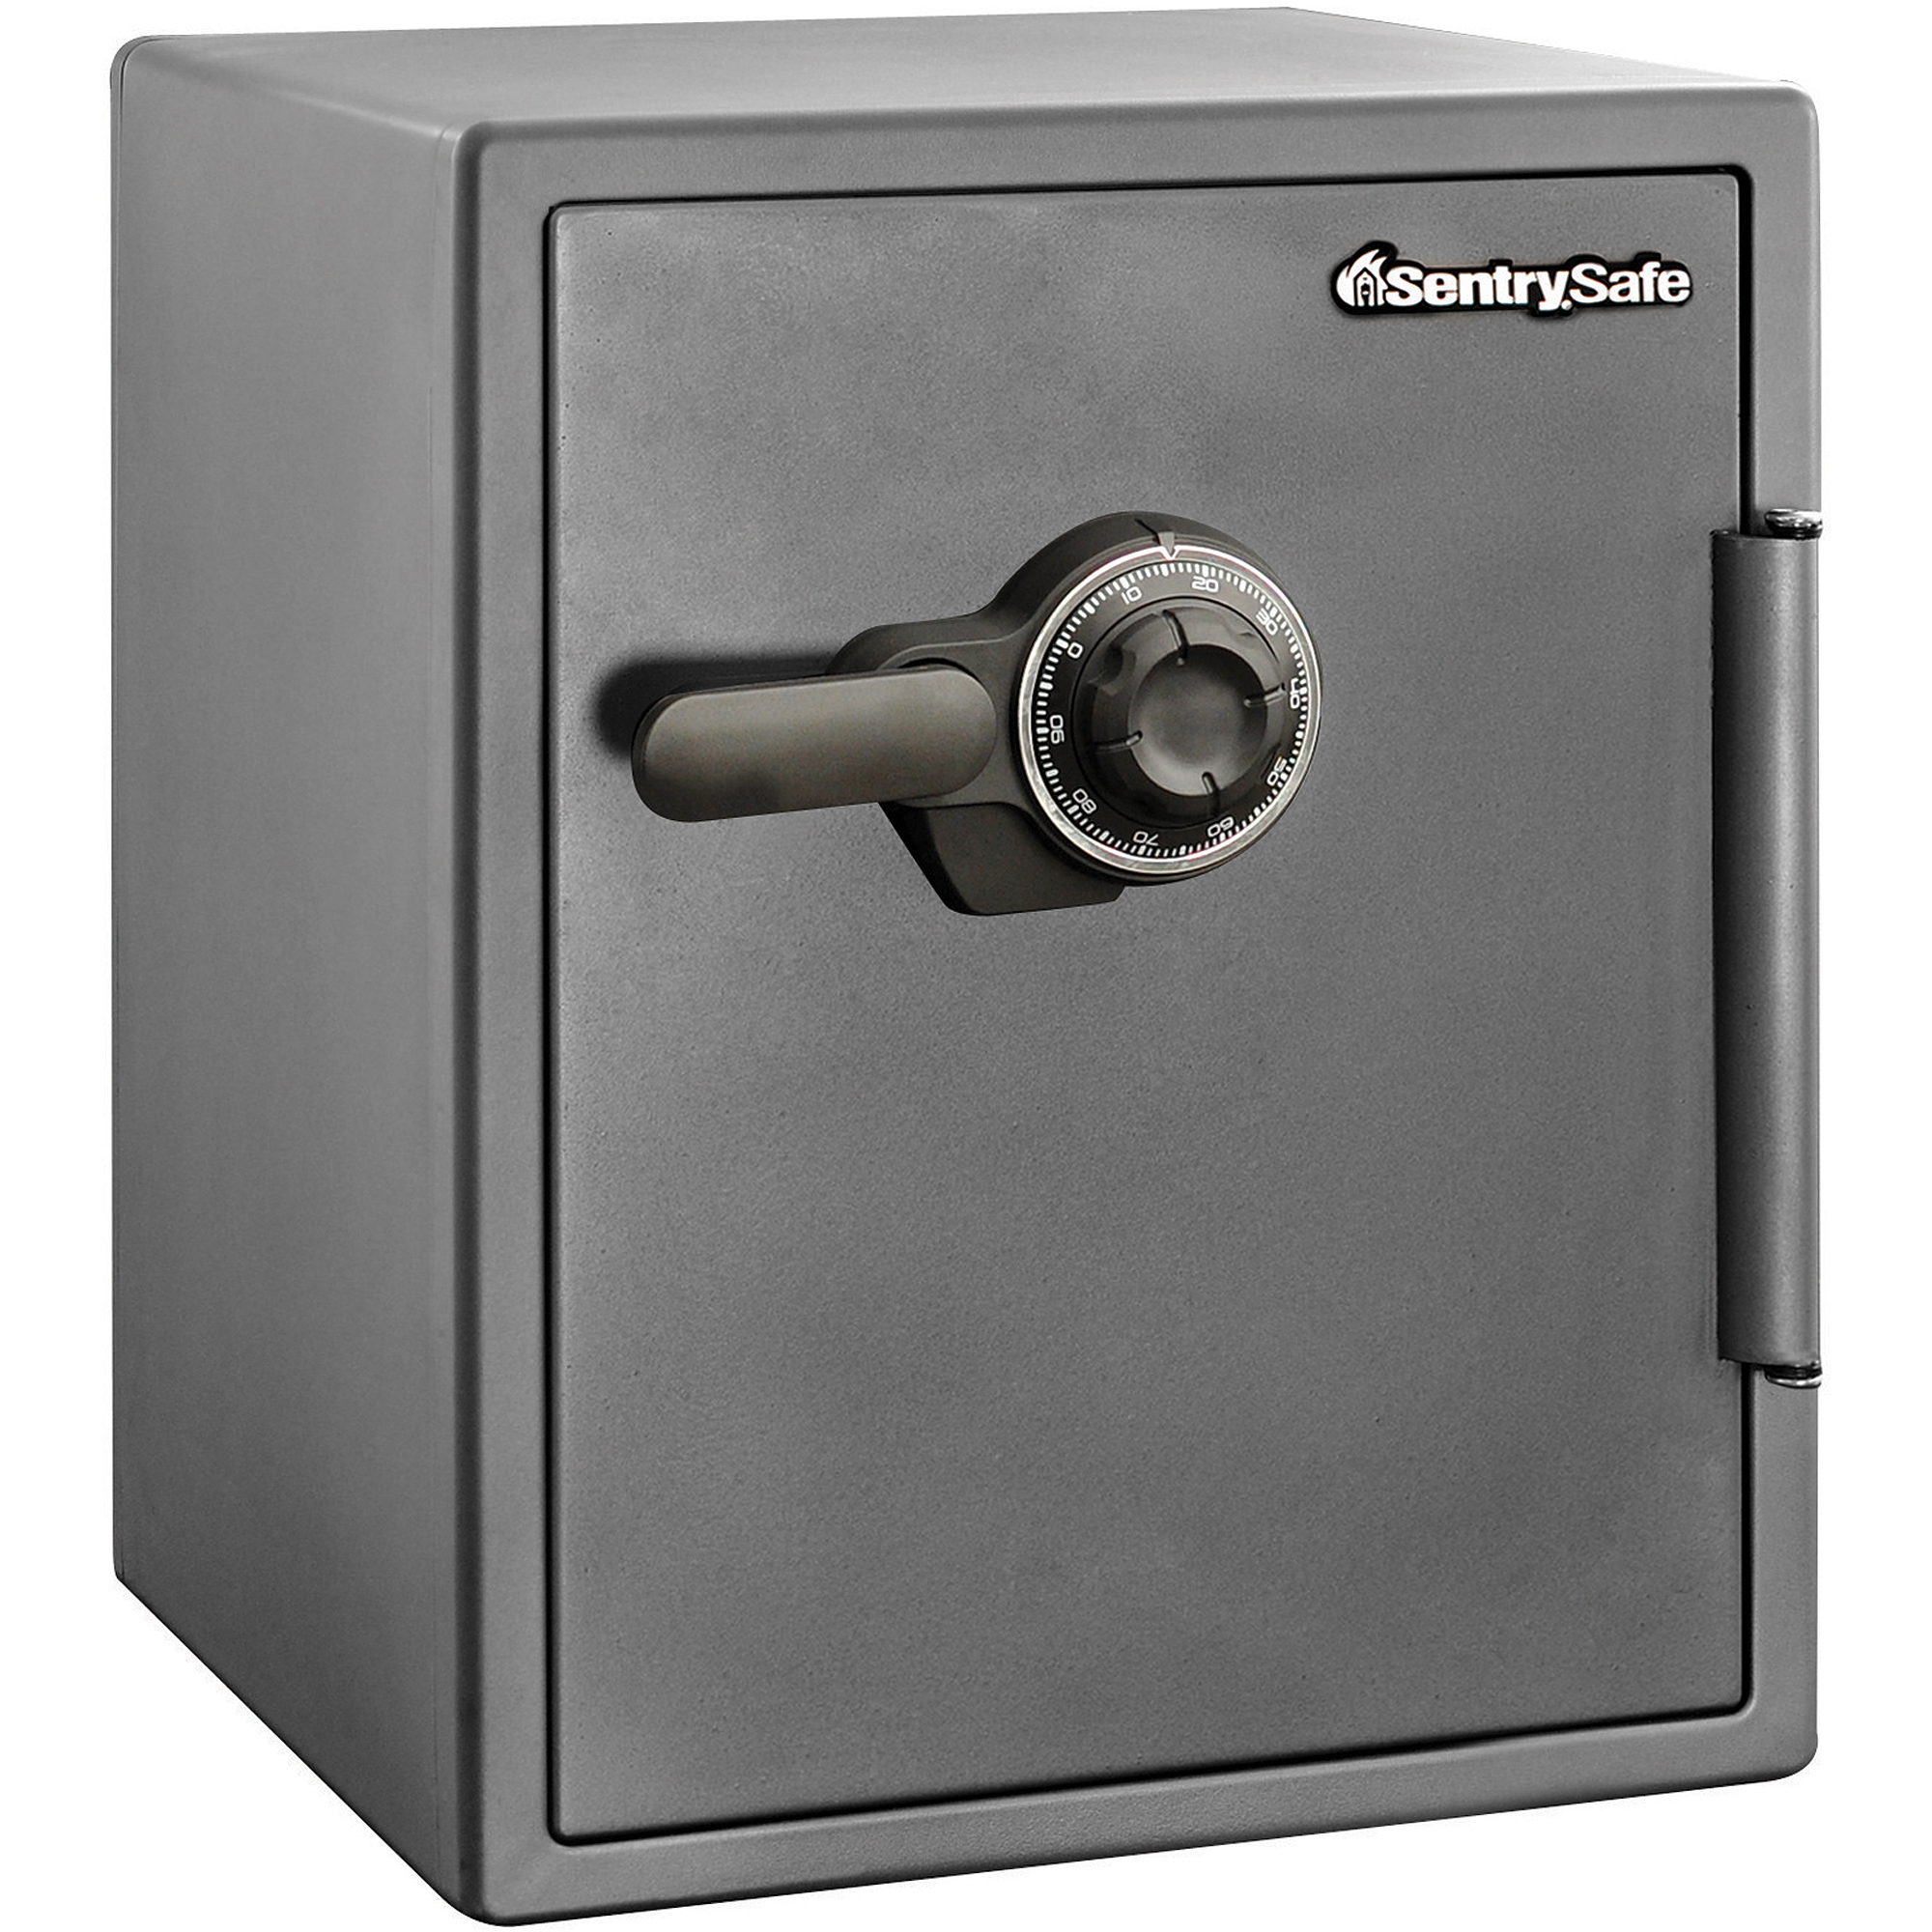 SentrySafe SF205CV Fireproof Safe with Combination Lock 2.0 cu ft